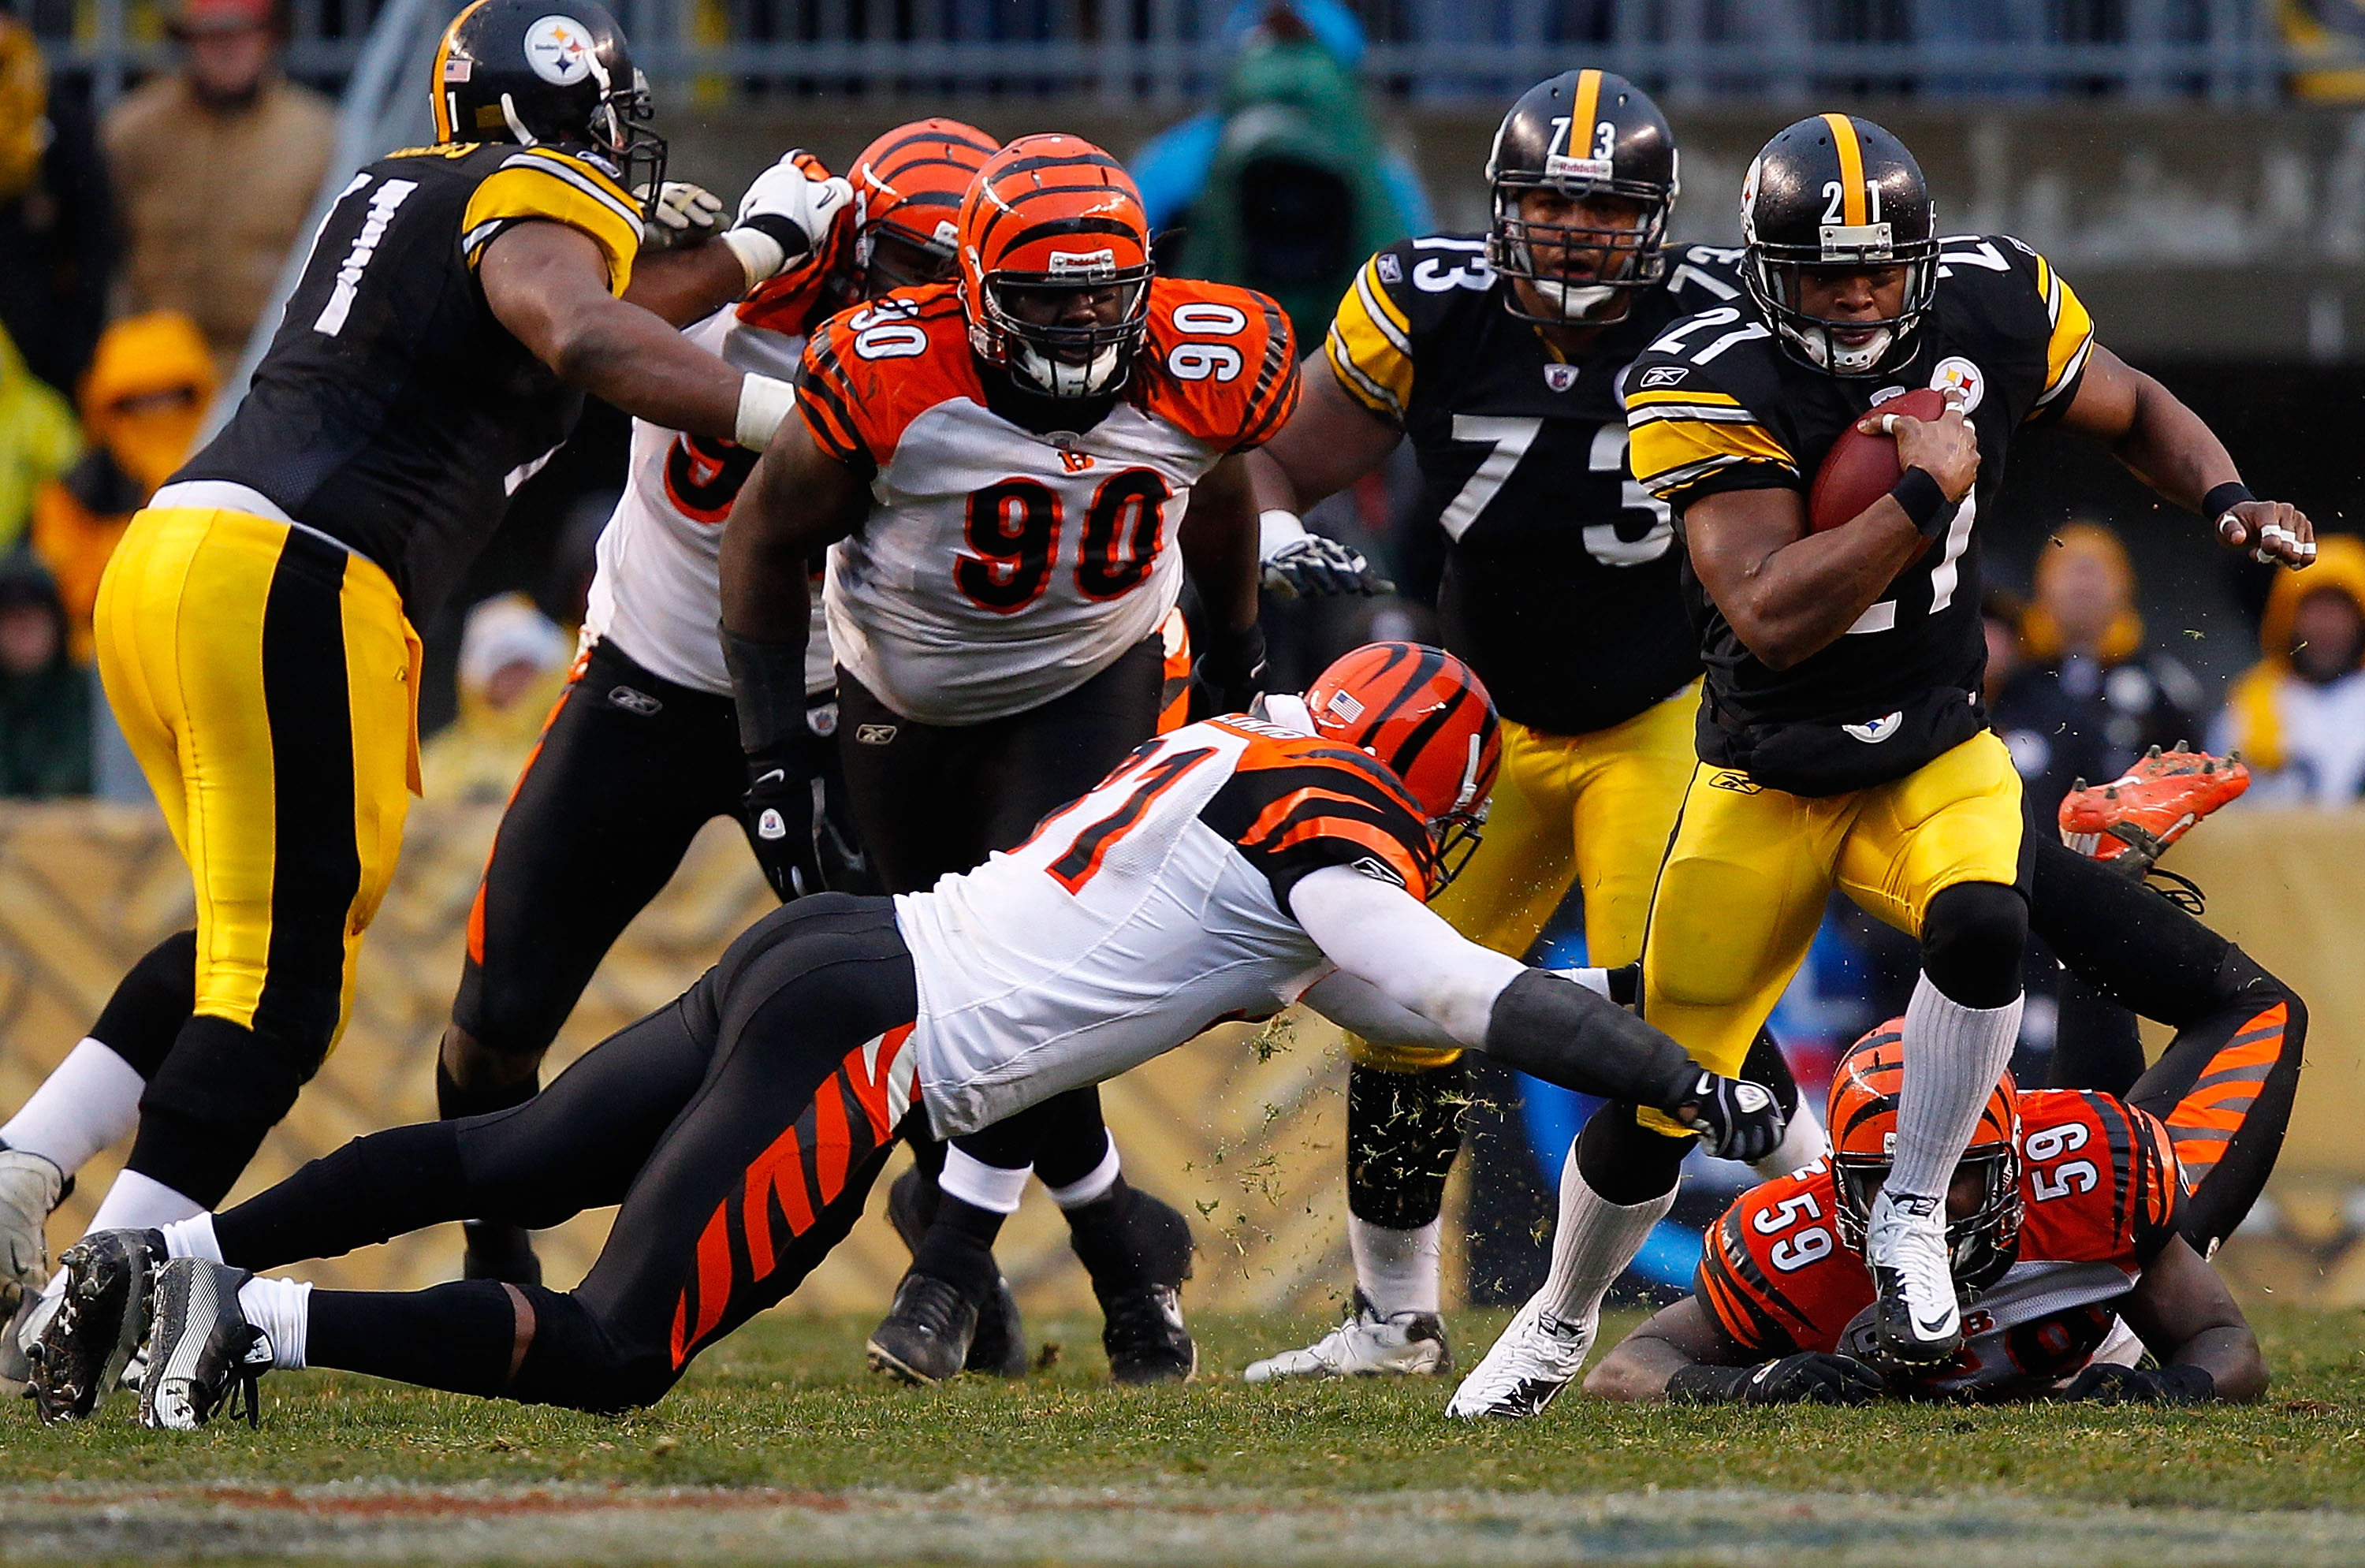 PITTSBURGH - DECEMBER 12:  Mewelde Moore #21 of the Pittsburgh Steelers runs with the ball against the Cincinnati Bengals during the game on December 12, 2010 at Heinz Field in Pittsburgh, Pennsylvania.  (Photo by Jared Wickerham/Getty Images)